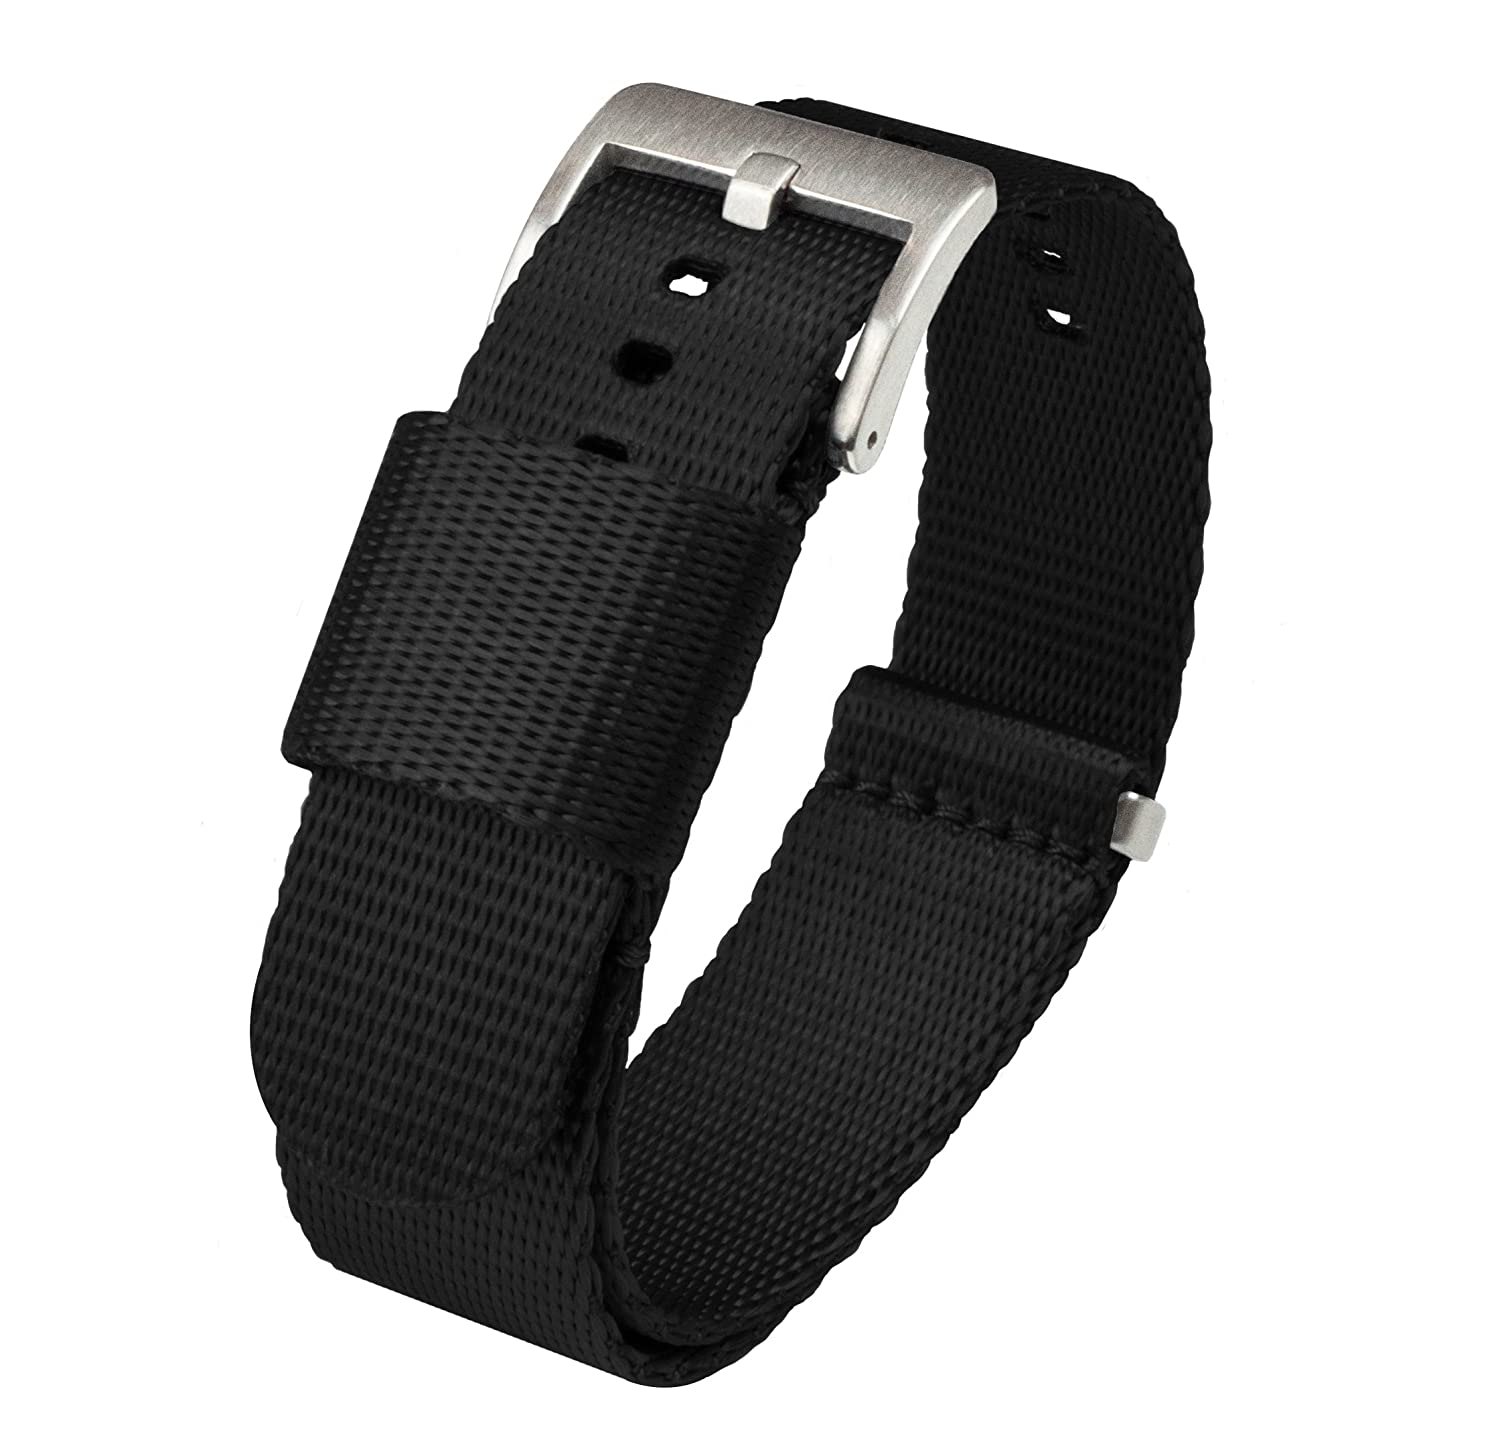 BARTON Watch Bands - Jetson NATO Style Watch Strap - Seatbelt Nylon Weave - Stainless Steel Buckle - Choice of Color & Width 18mm, 20mm, 22mm or 24mm - Seat Belt Nylon Watch Bands